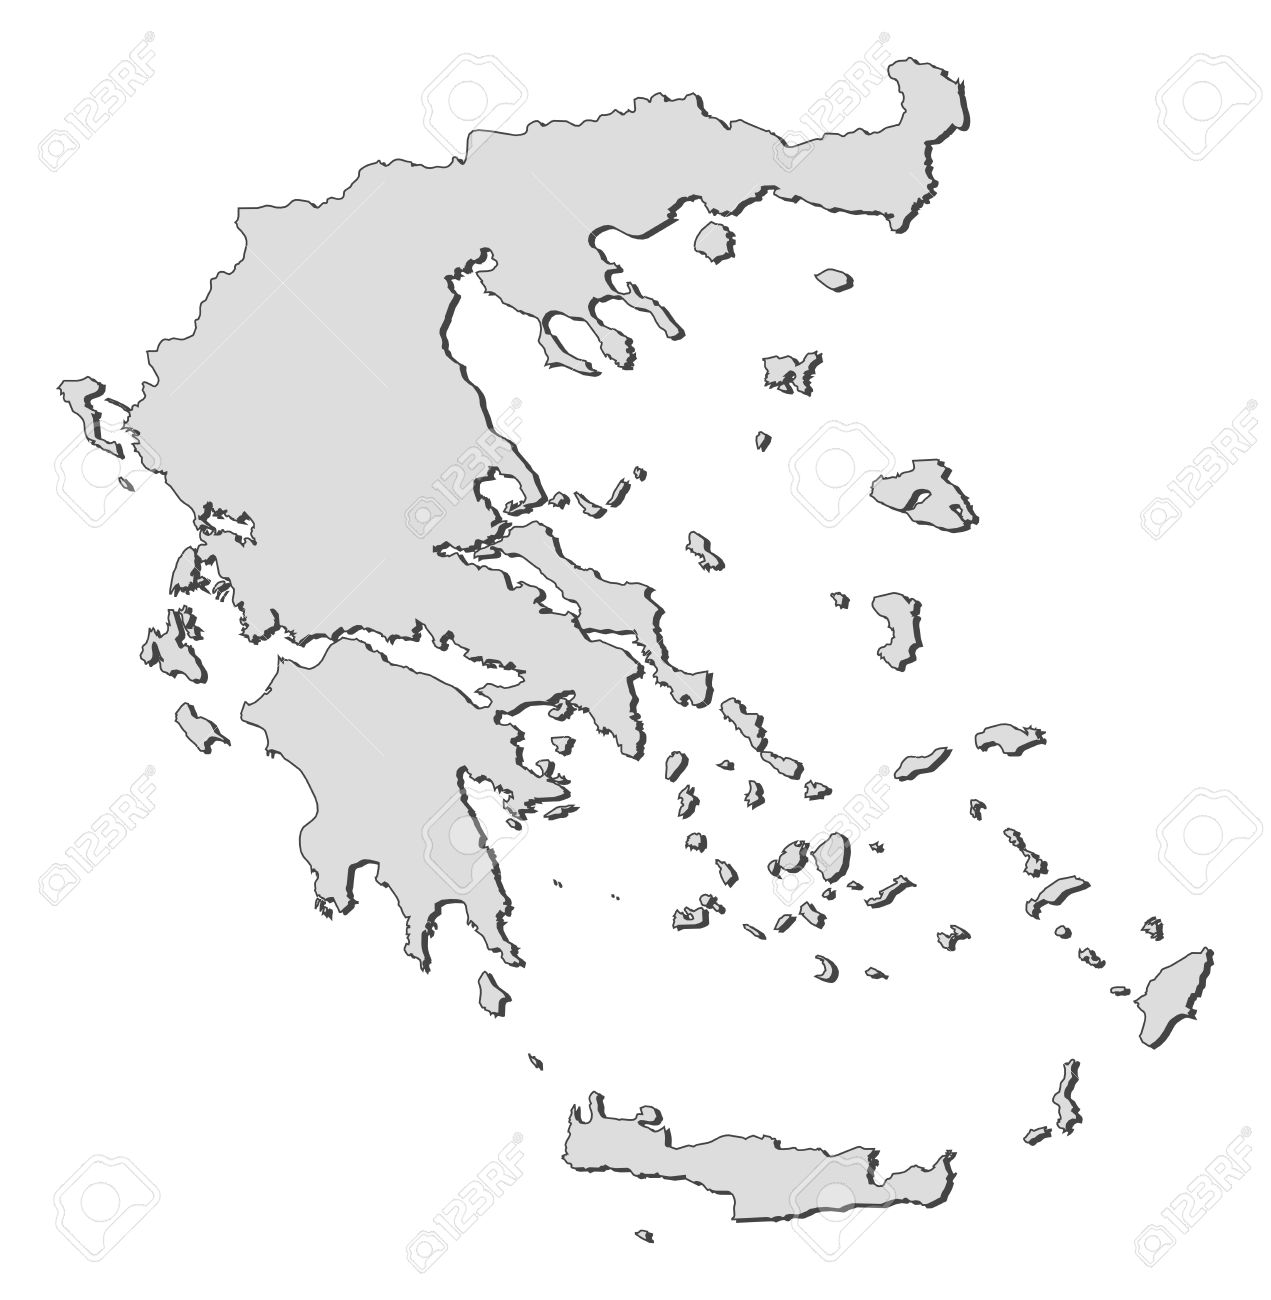 Political map of Greece with the several states.